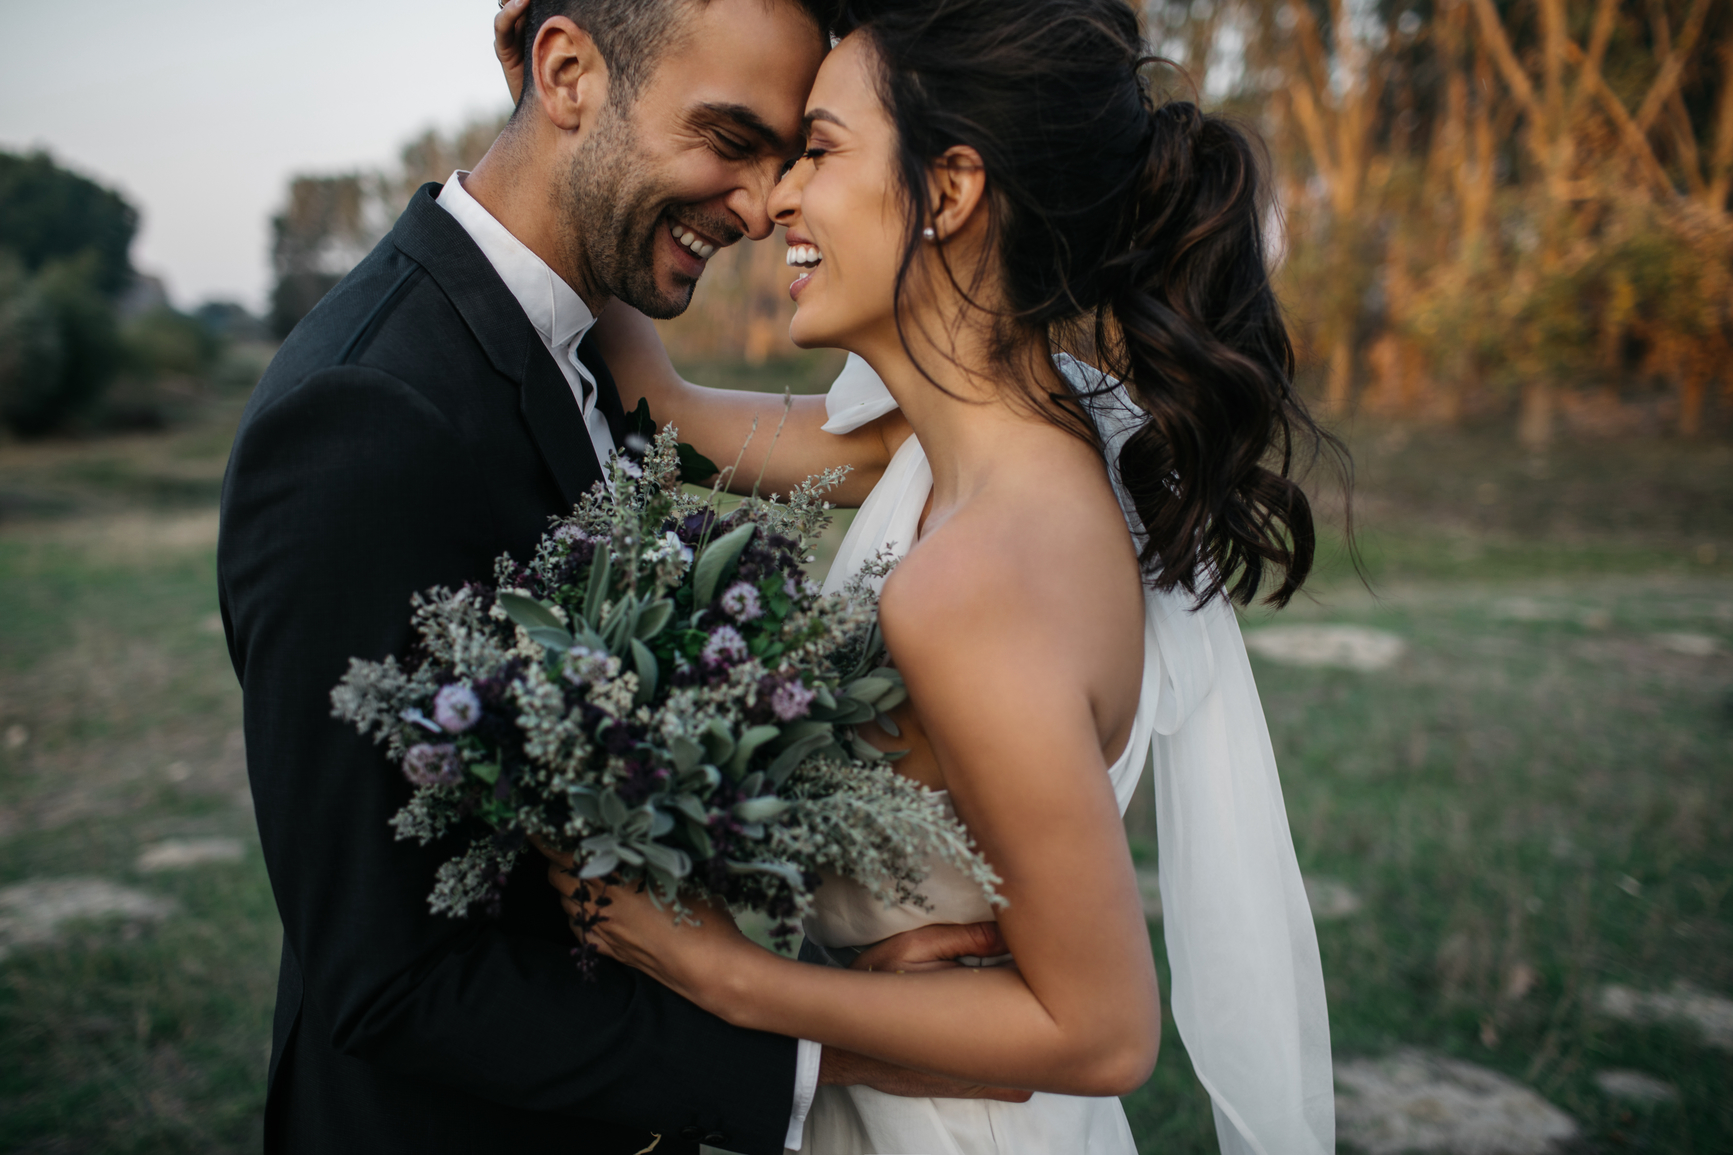 how to wish newly married couple